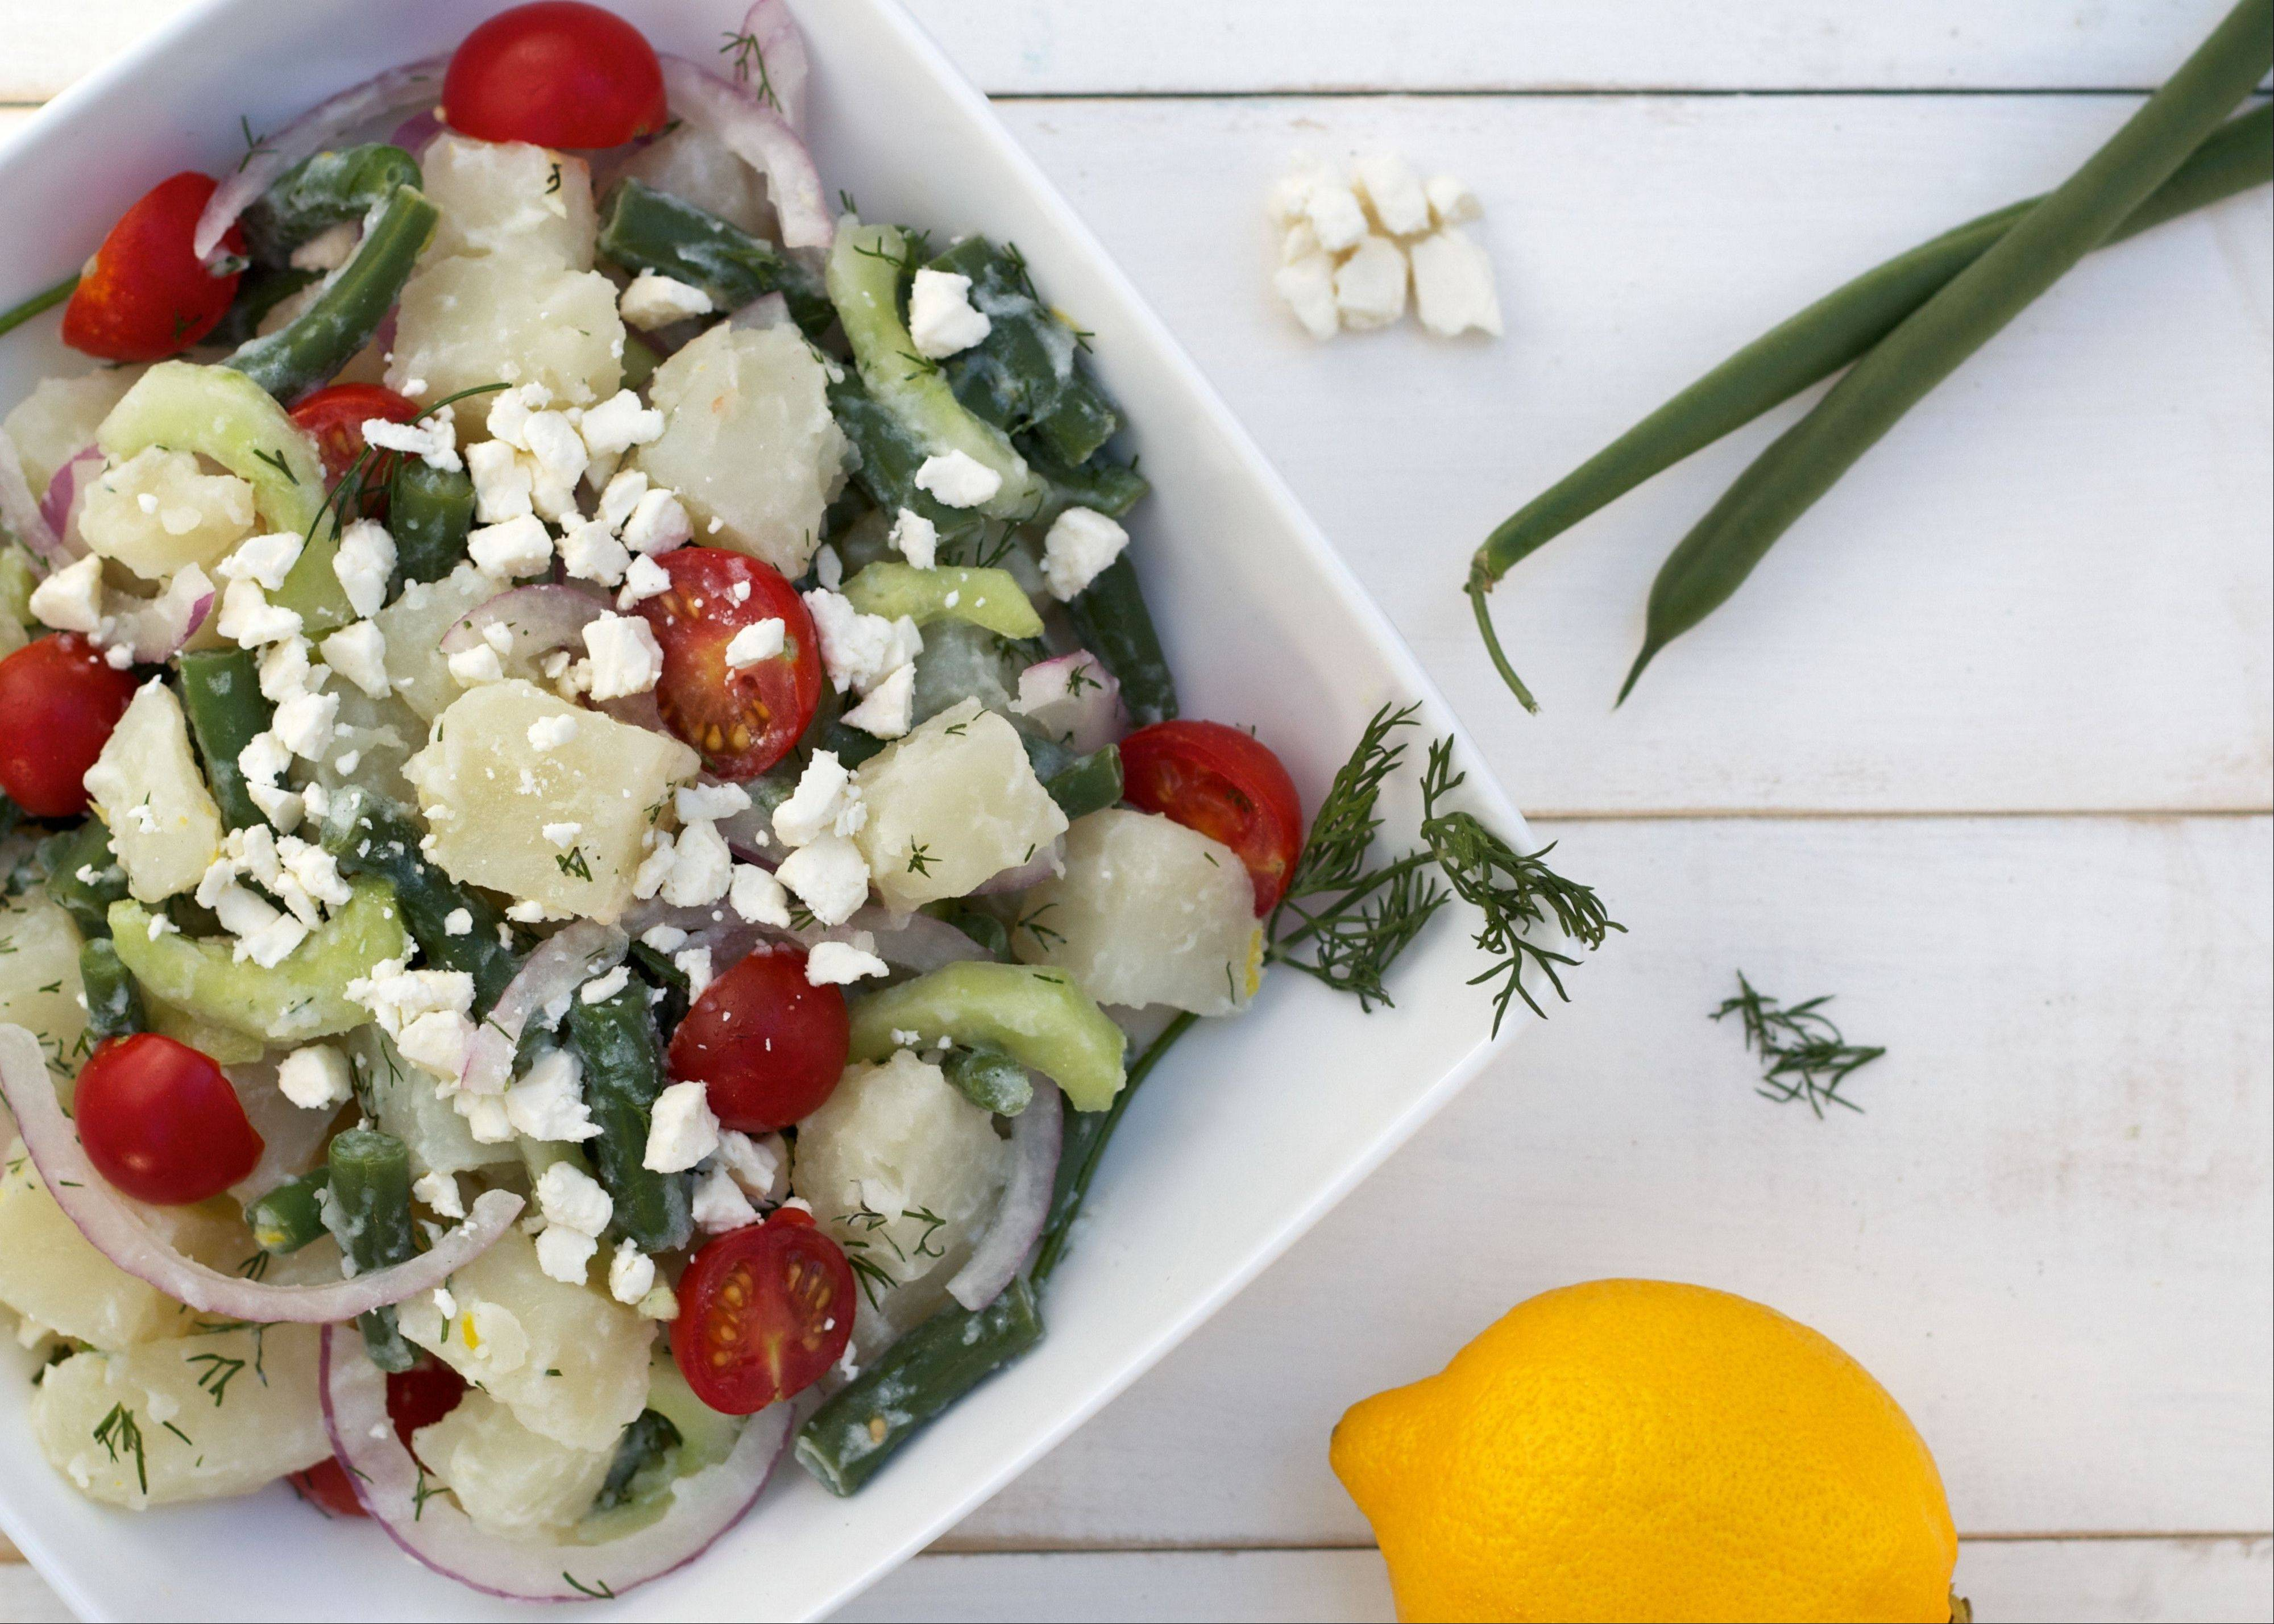 Feta cheese, tomatoes and fresh dill give potato salad a Greek flare.